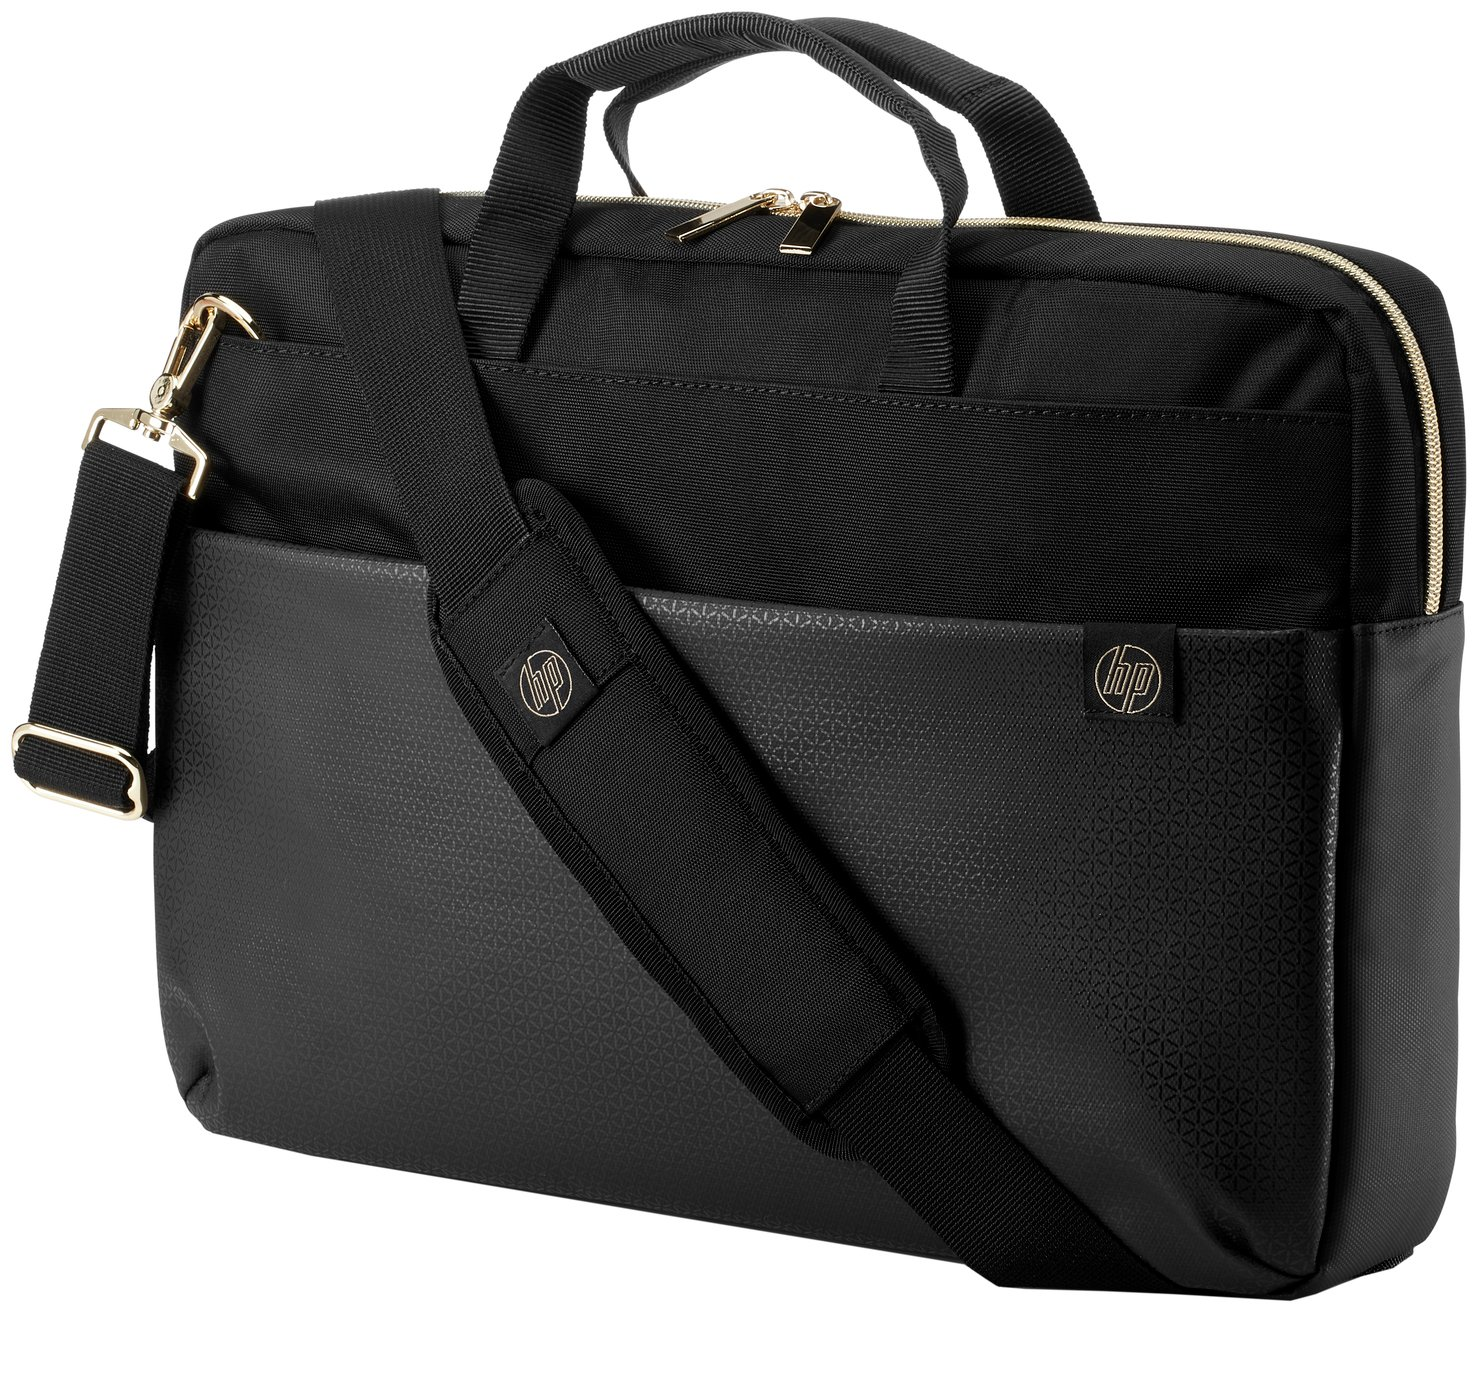 HP Duotone 15.6 Inch Laptop Briefcase - Gold and Black from HP